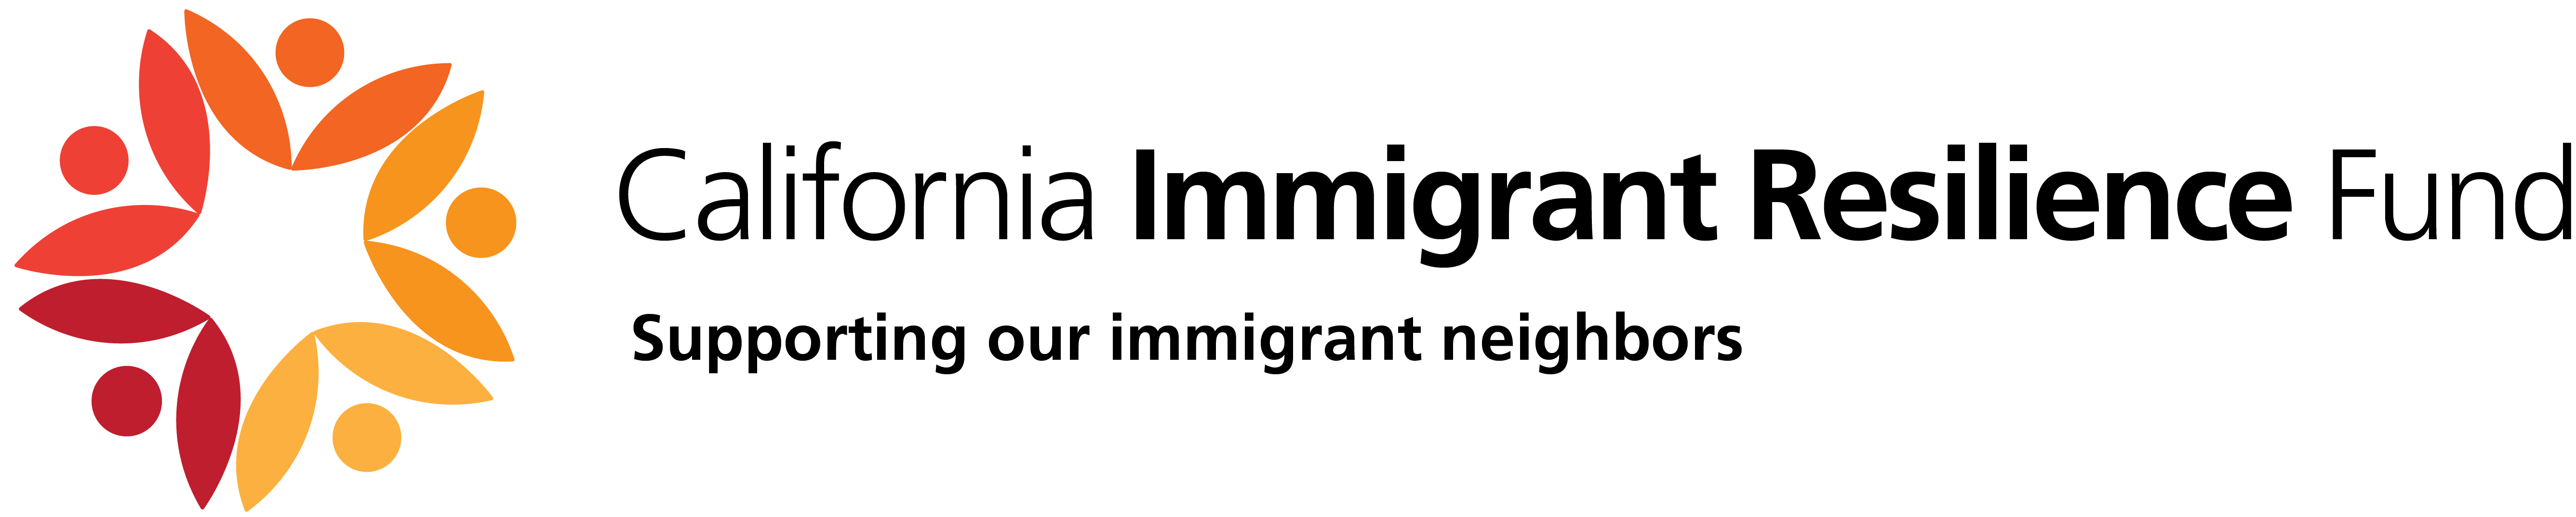 California Immigrant Resilience Fund logo, which features a yellow-orange-brown blossom logo on the left and the name on the right, with the tagline, Supporting our immigrant neighbors, underneath.